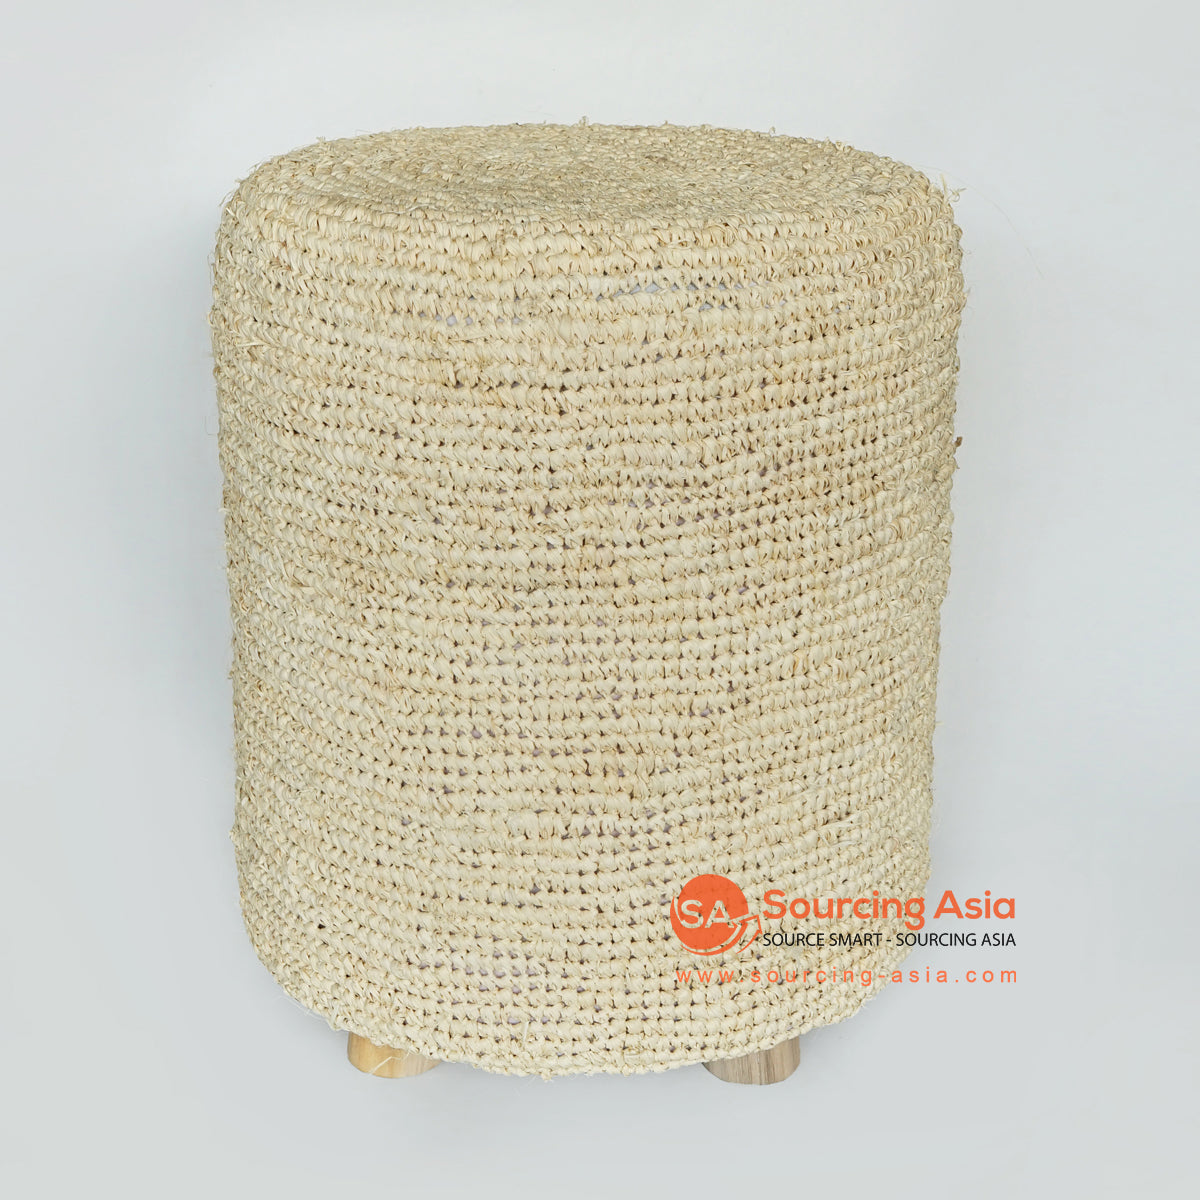 MRC166 CREAM ROUND PALM RAFFIA SITTING STOOL